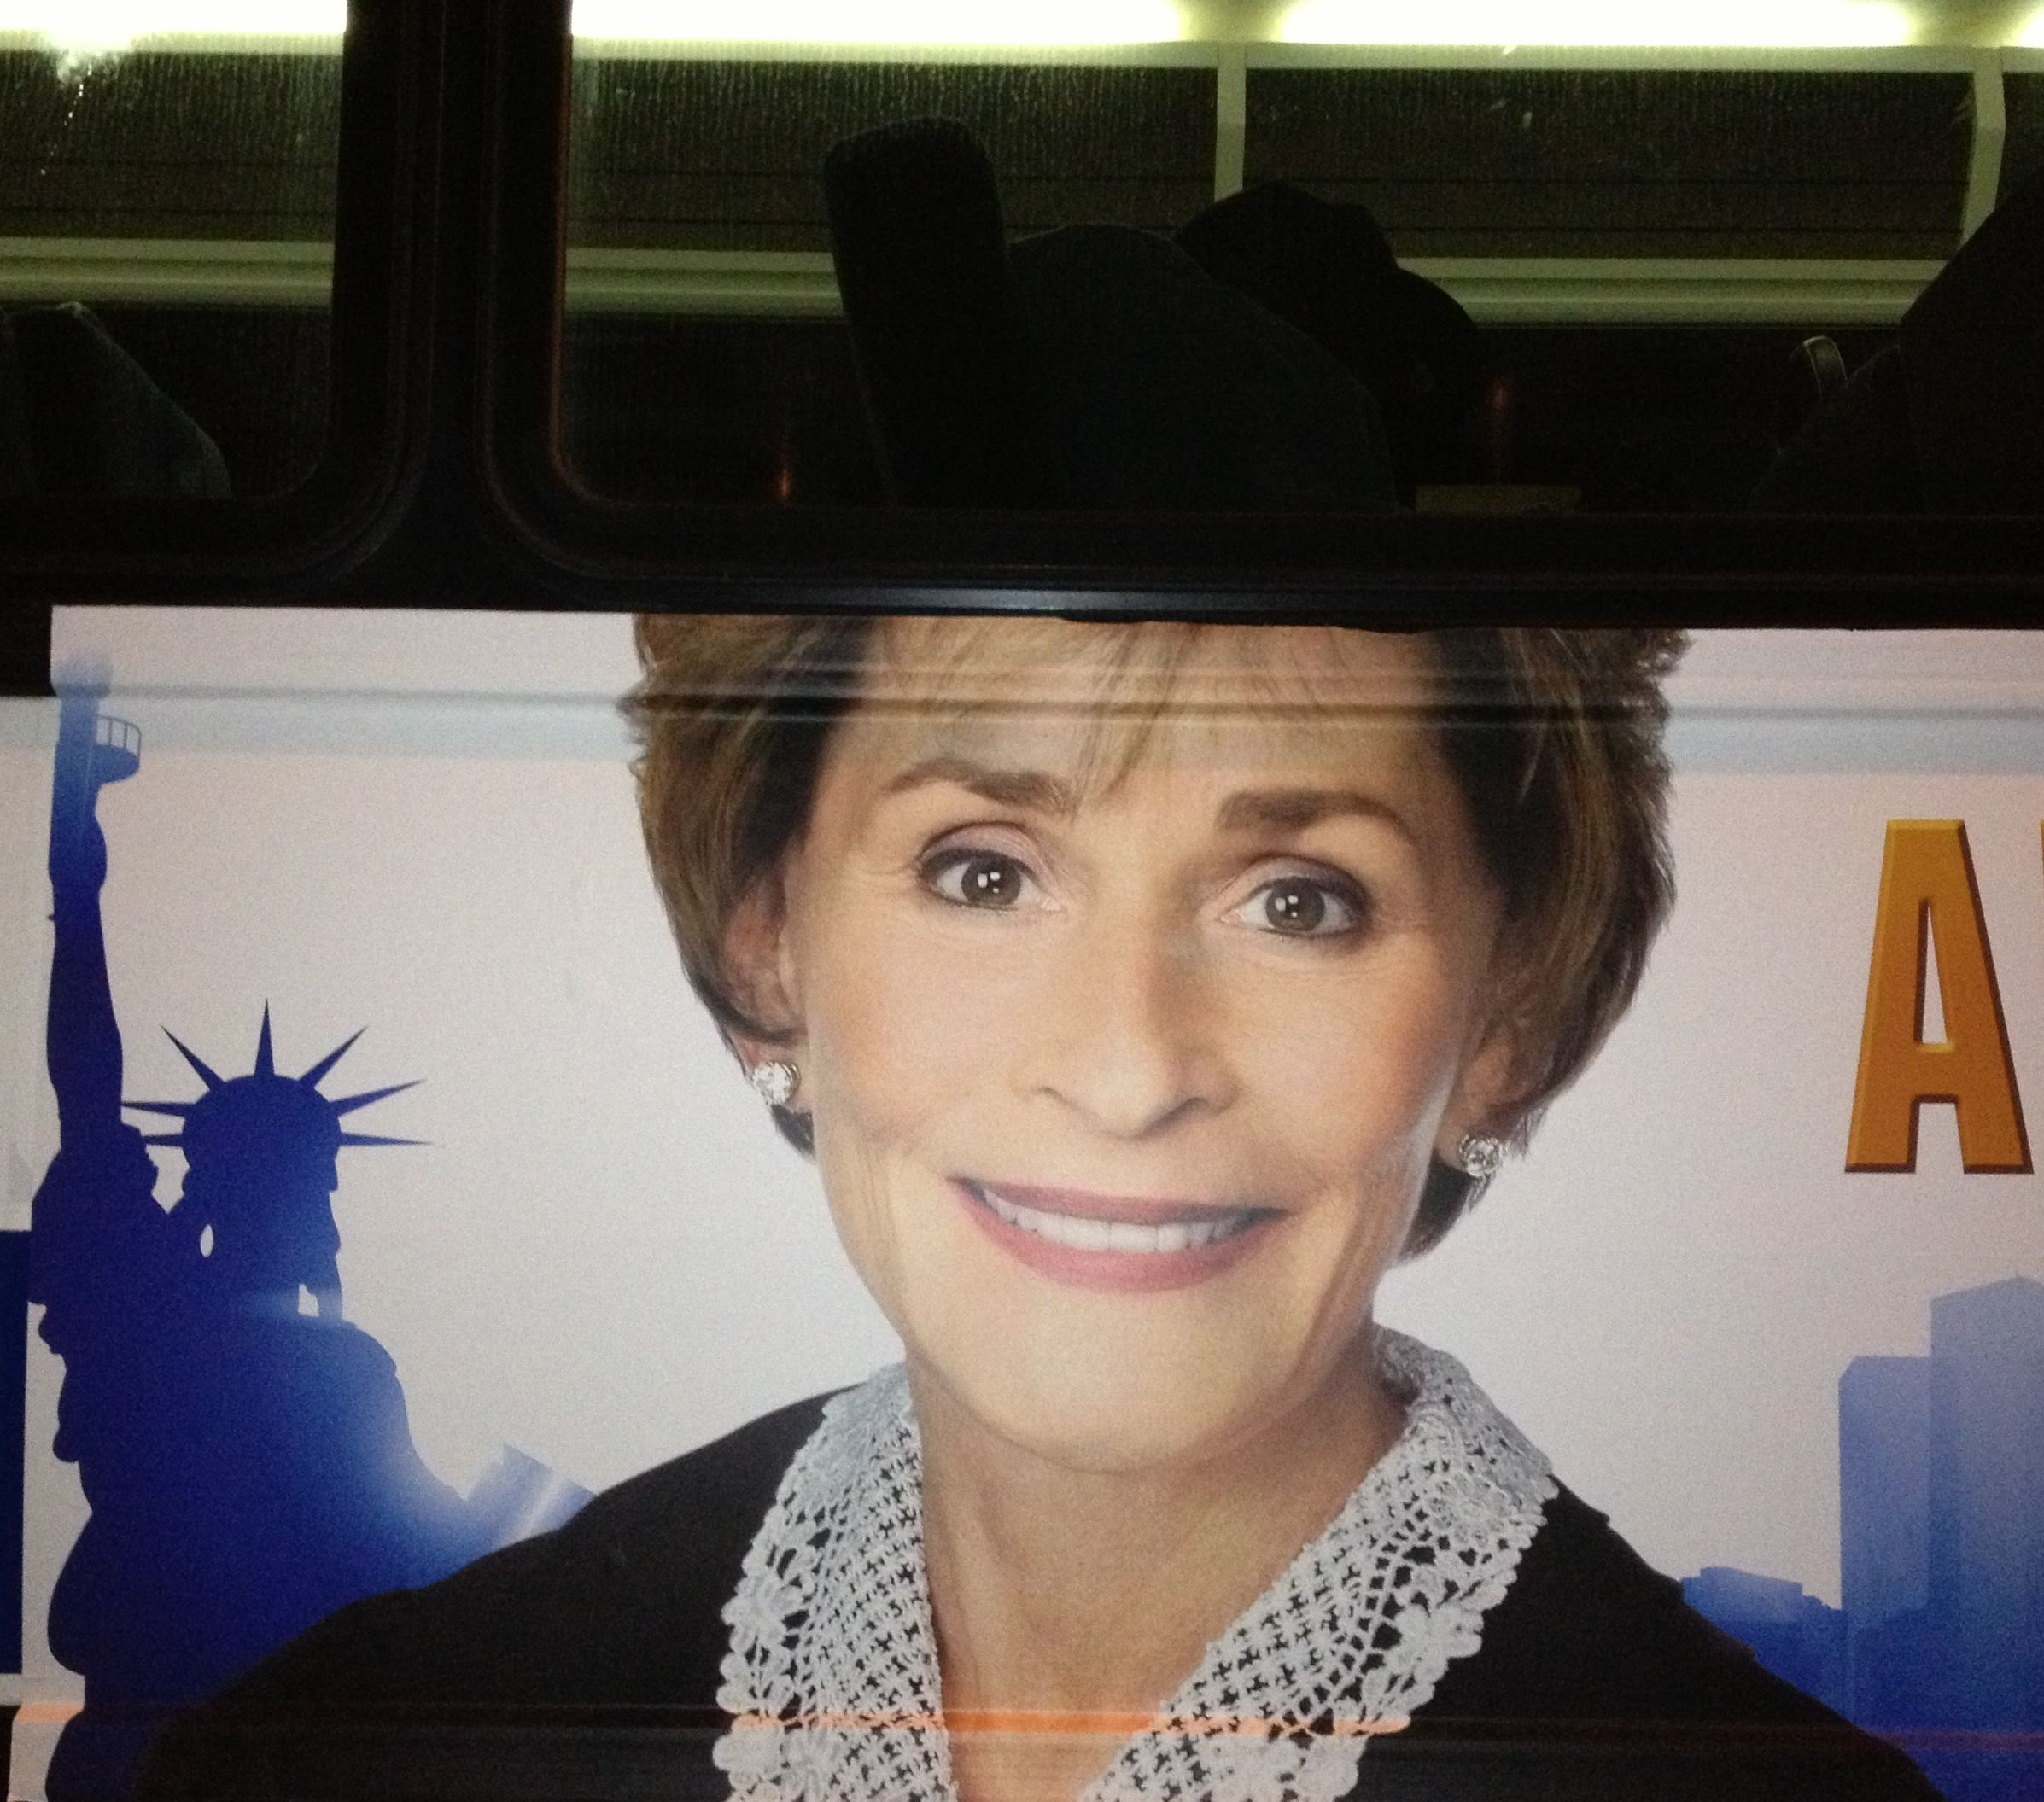 Judge Judy A Bus And The Statue Of Liberty Judge Judy Statue Of Liberty Statue